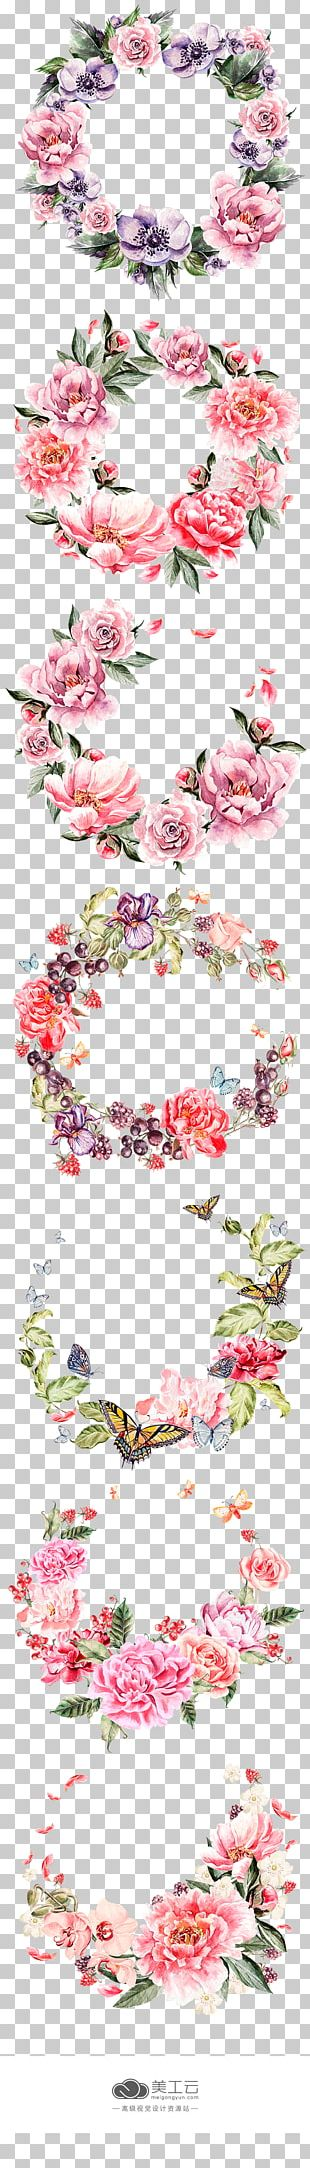 Wreath Flower Pink PNG